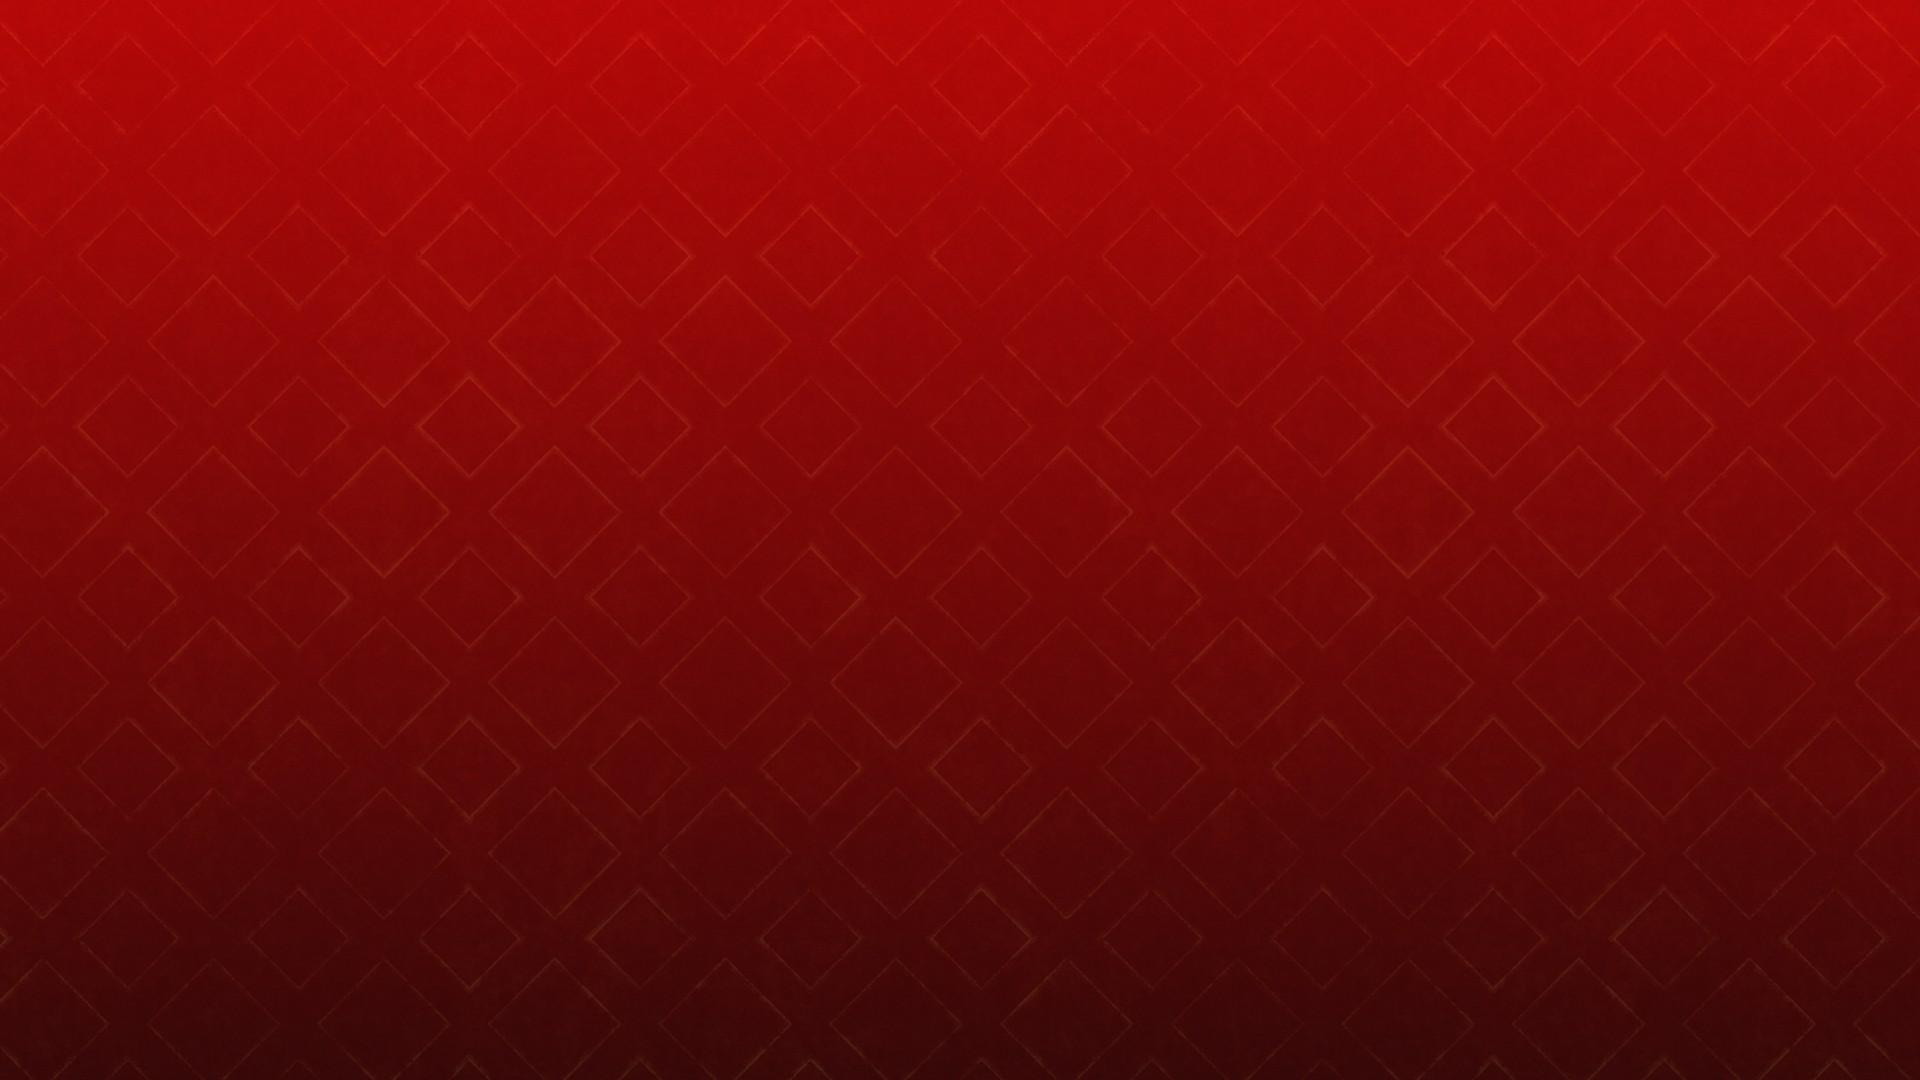 Red patterns snakes oriental background supersnake wallpaper 18275 1920x1080